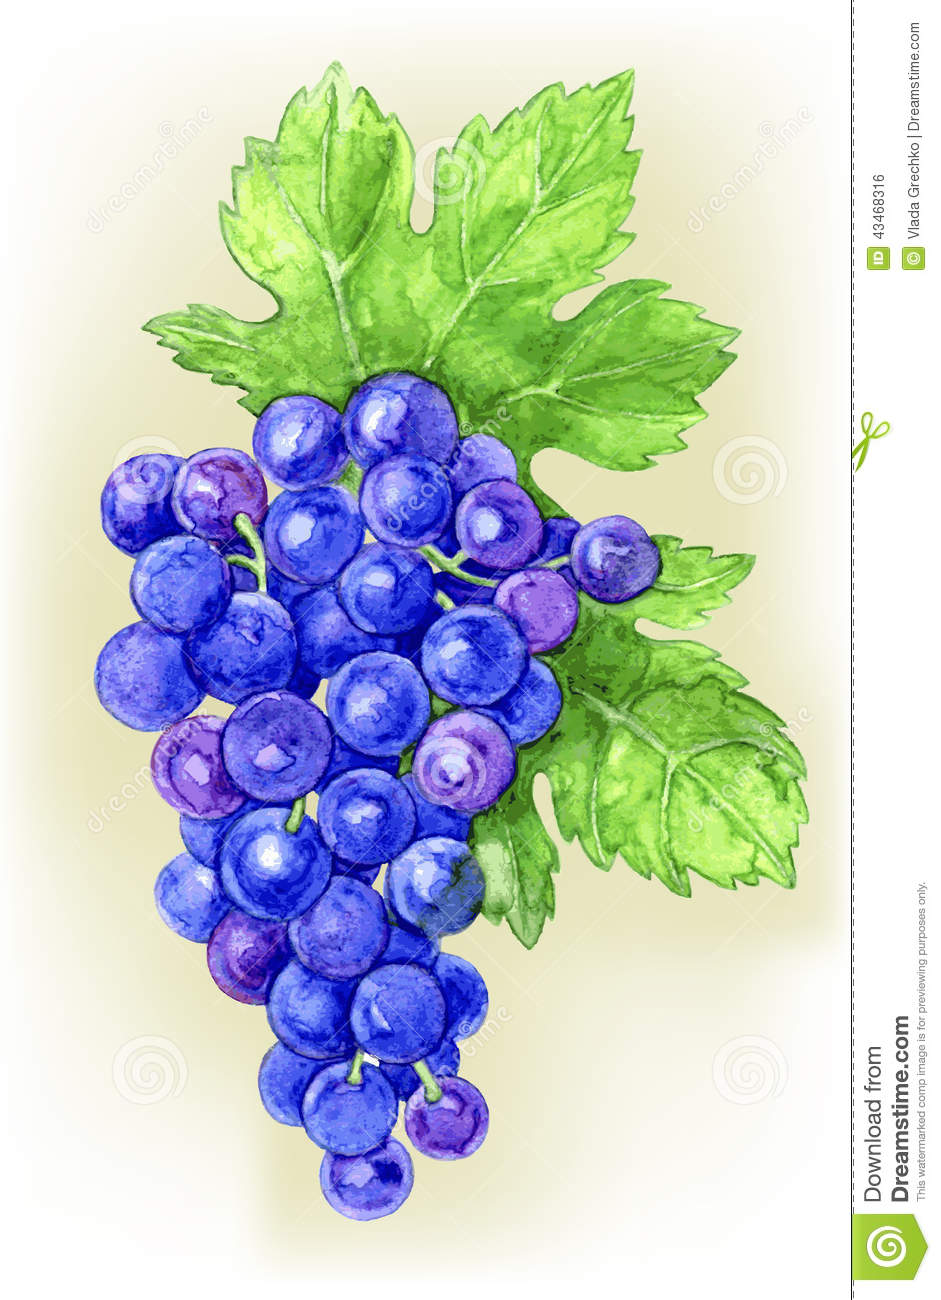 Branch Draw Grapes Illustration